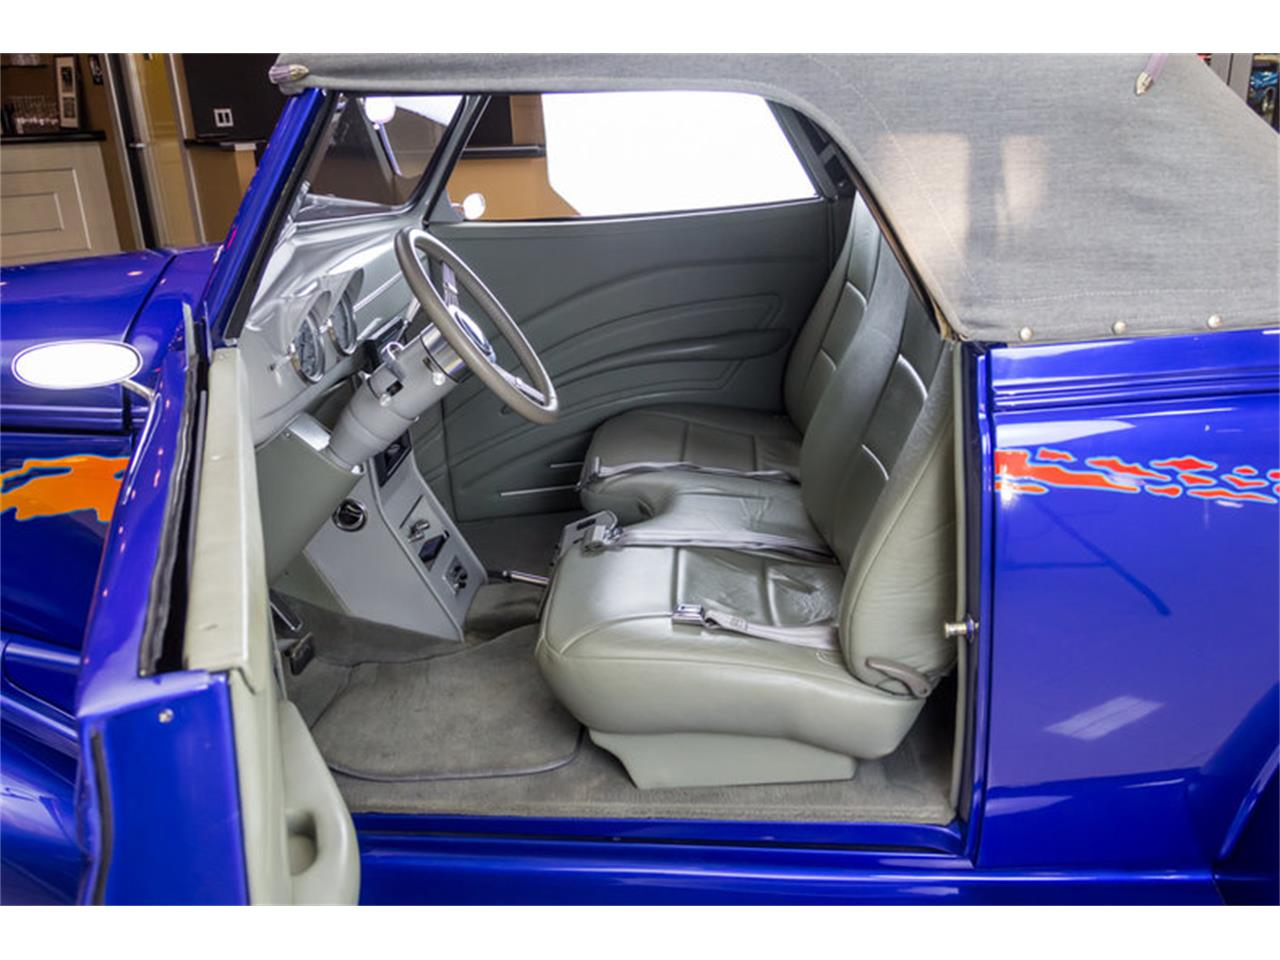 Large Picture of '37 Chevrolet Street Rod located in Michigan - $59,900.00 - LCW7